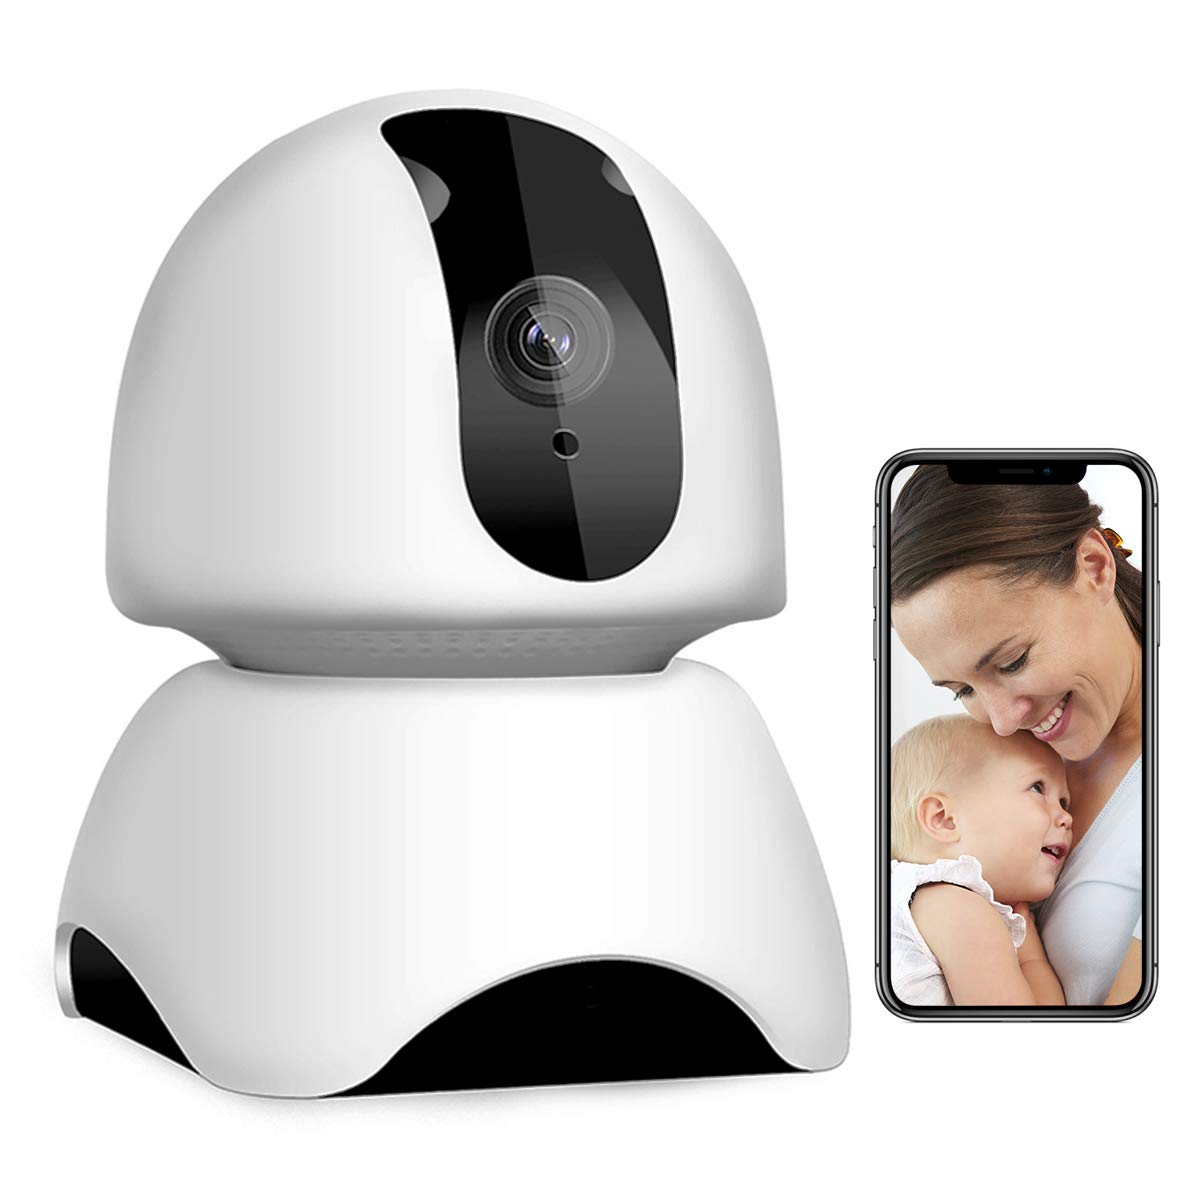 Vacam Wireless IP Security Camera HD 1080P Baby Care WiFi Remote Panorama  360 Degree Viewer Home Surveillance System for Pet/Baby with Pan/Tilt